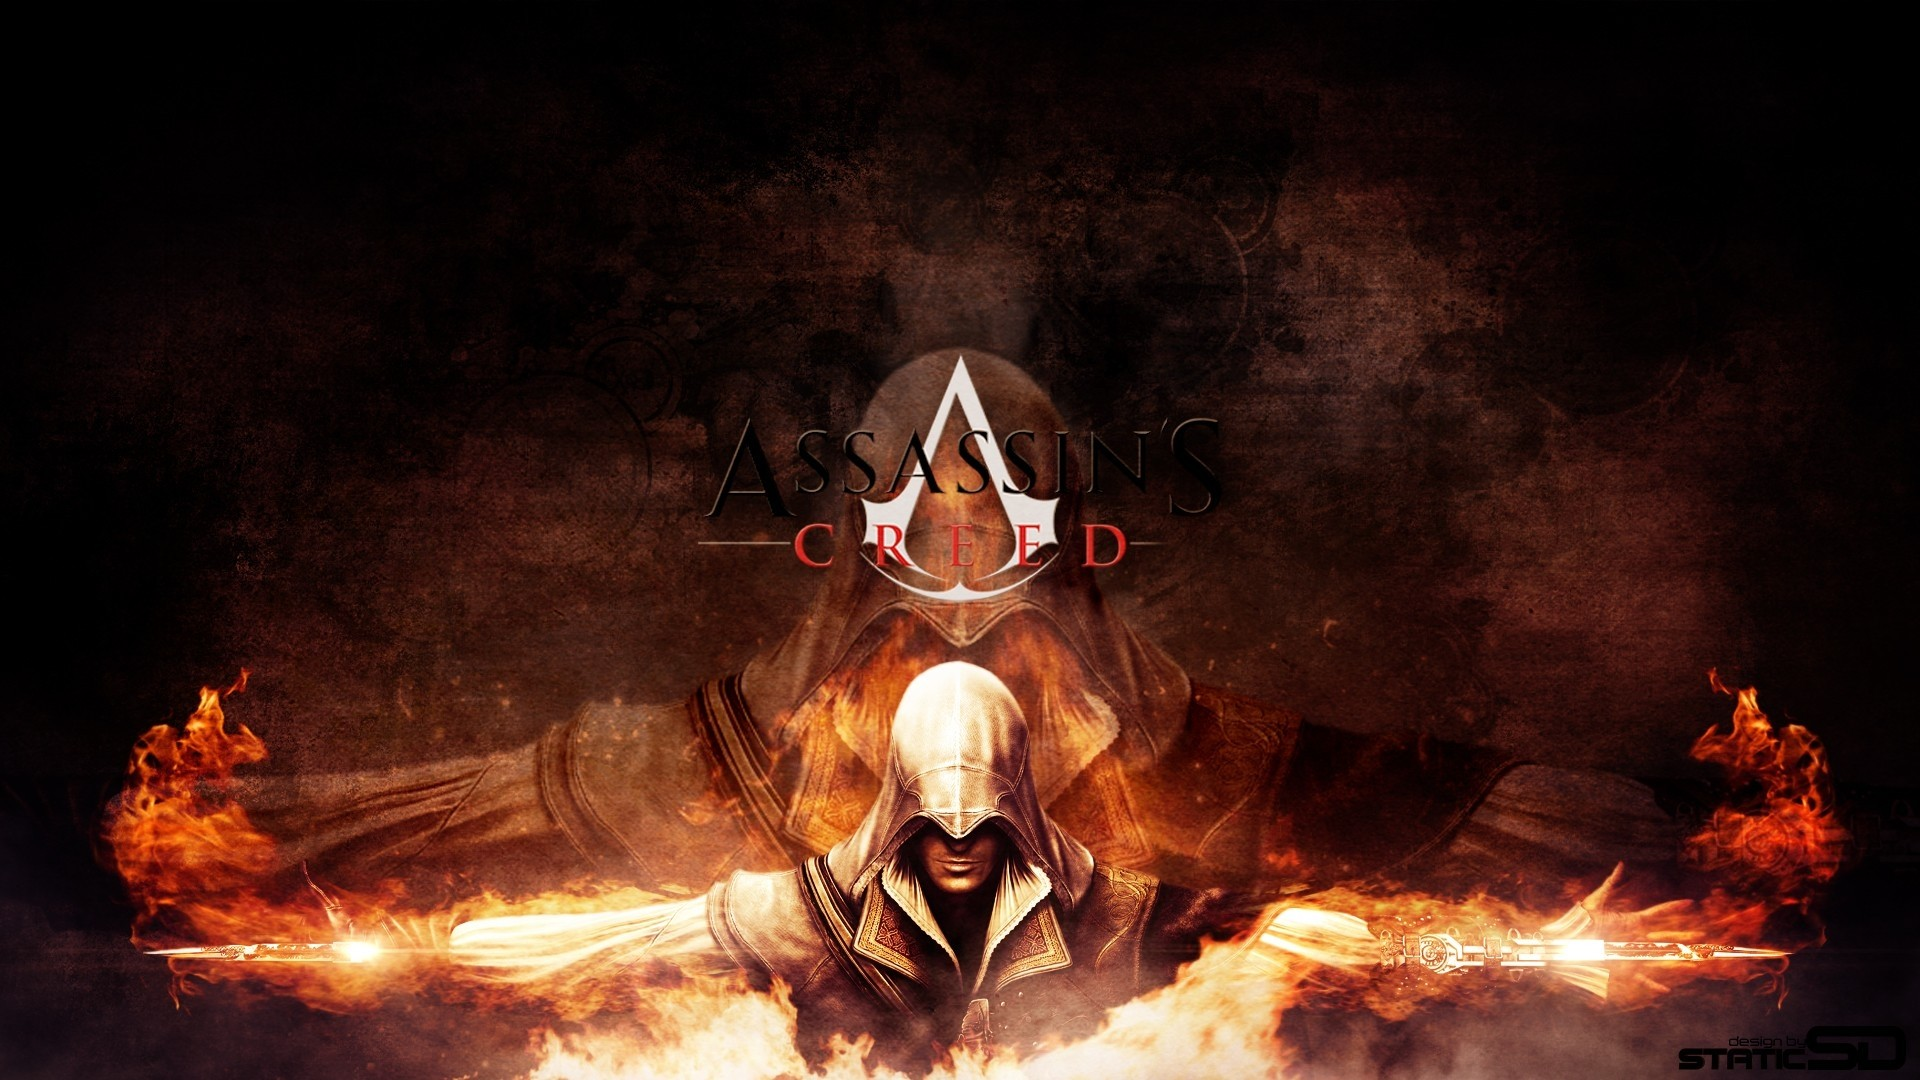 assassins creed logo wallpaper 78 images